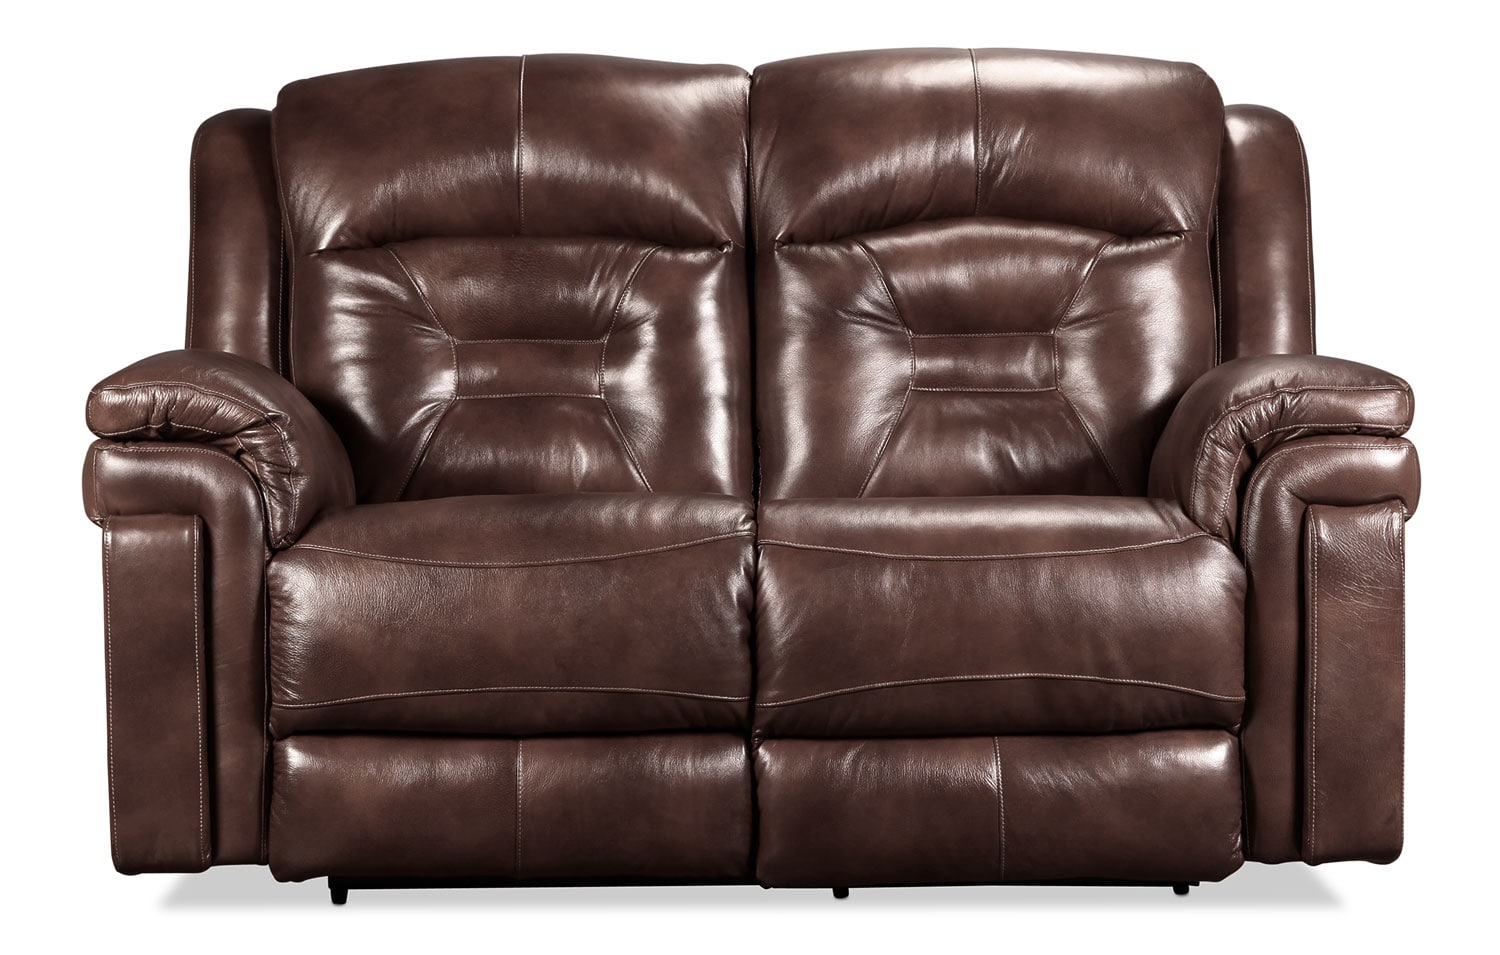 Mystify Power Reclining Loveseat - Brown